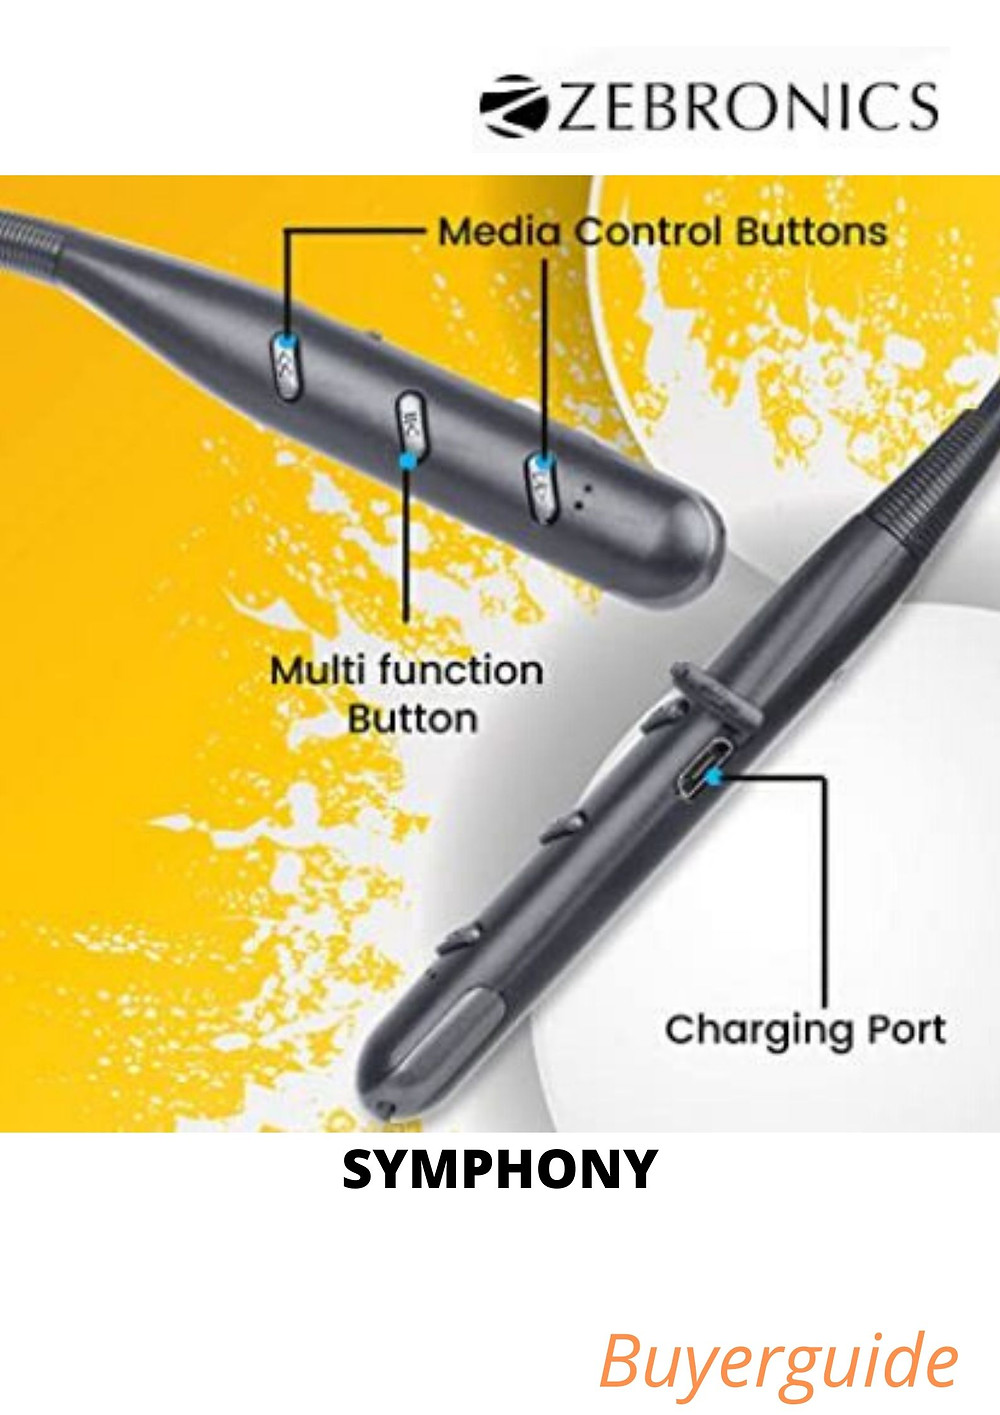 Zeb-symphony is a wireless earphone with neckband and volume/media control Bluetooth range: 10 meters , It has dual pairing and magnetic earpiece